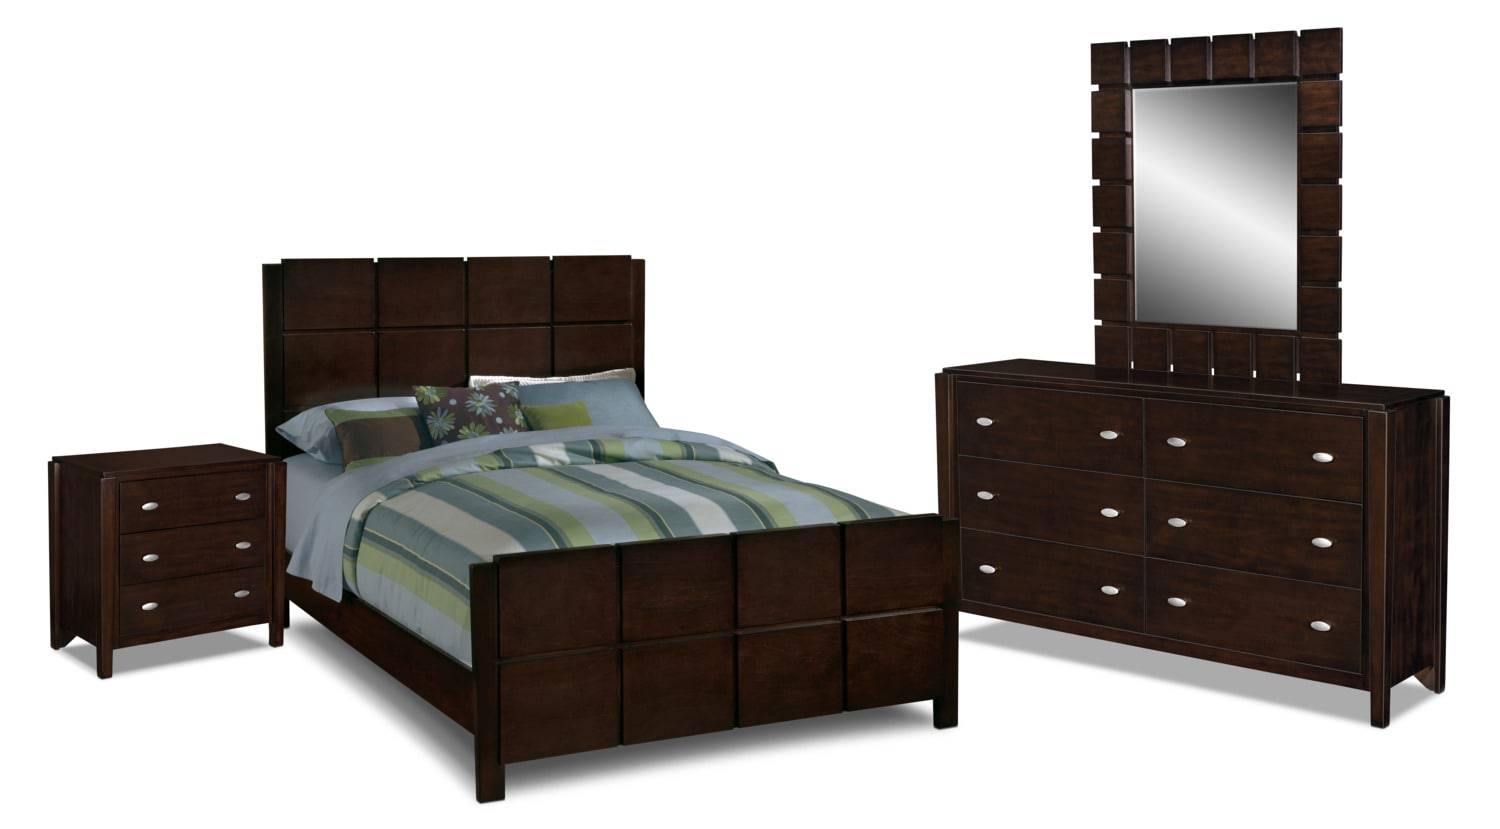 Mosaic 6 Piece King Bedroom Set   Dark Brown by Factory OutletMosaic 6 Piece King Bedroom Set   Dark Brown   American Signature  . American Signature Furniture King Bedroom Sets. Home Design Ideas